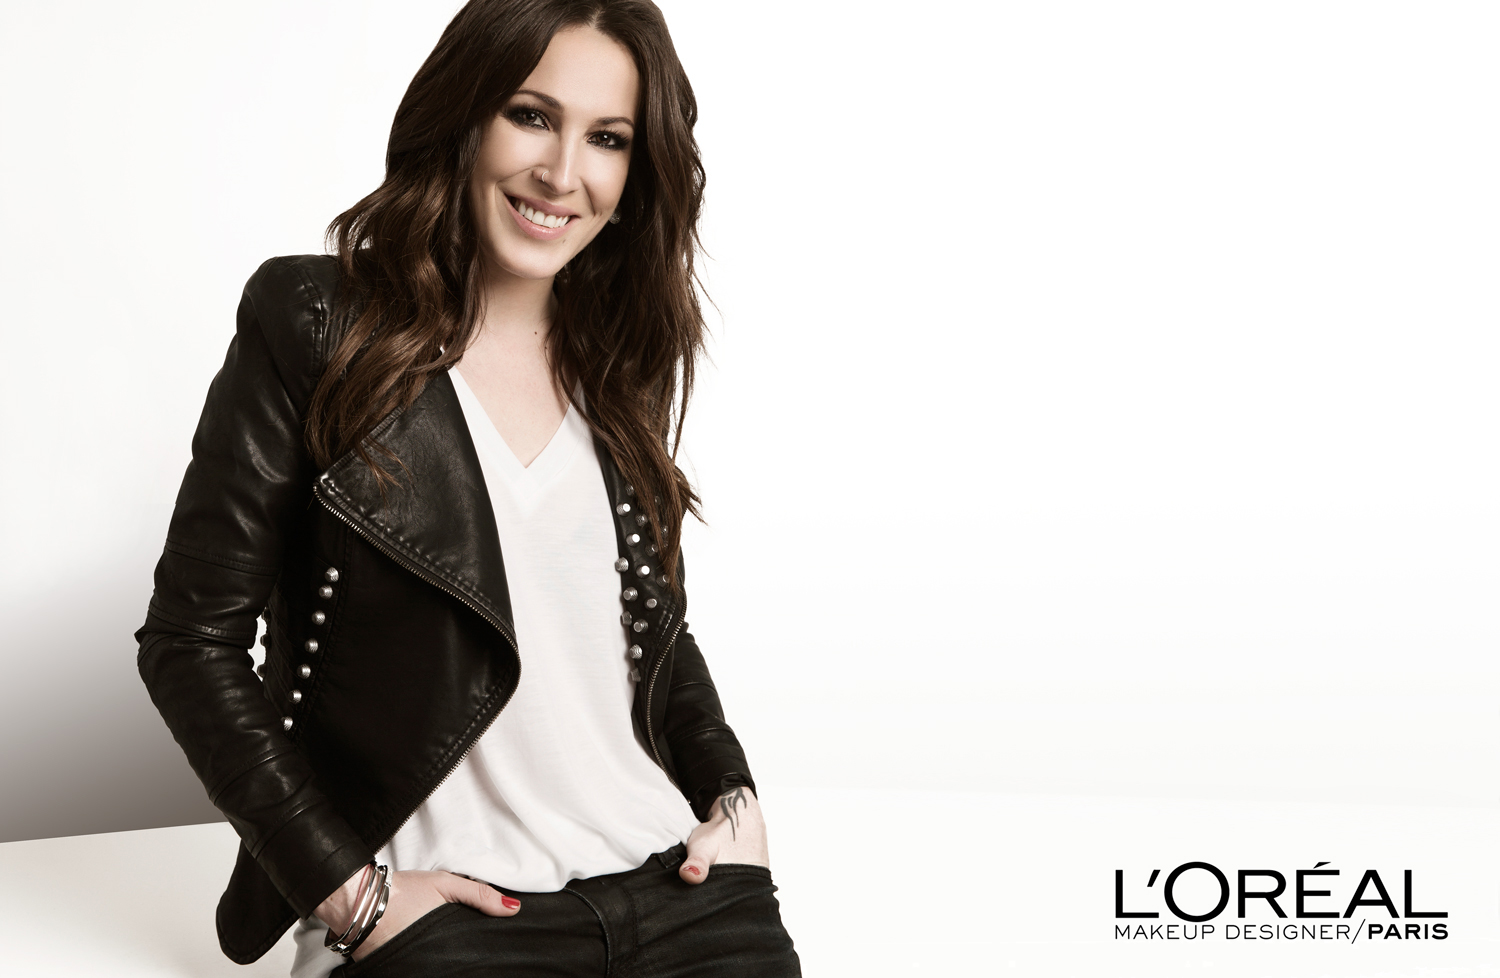 Malú for L'Oréal Paris Spain